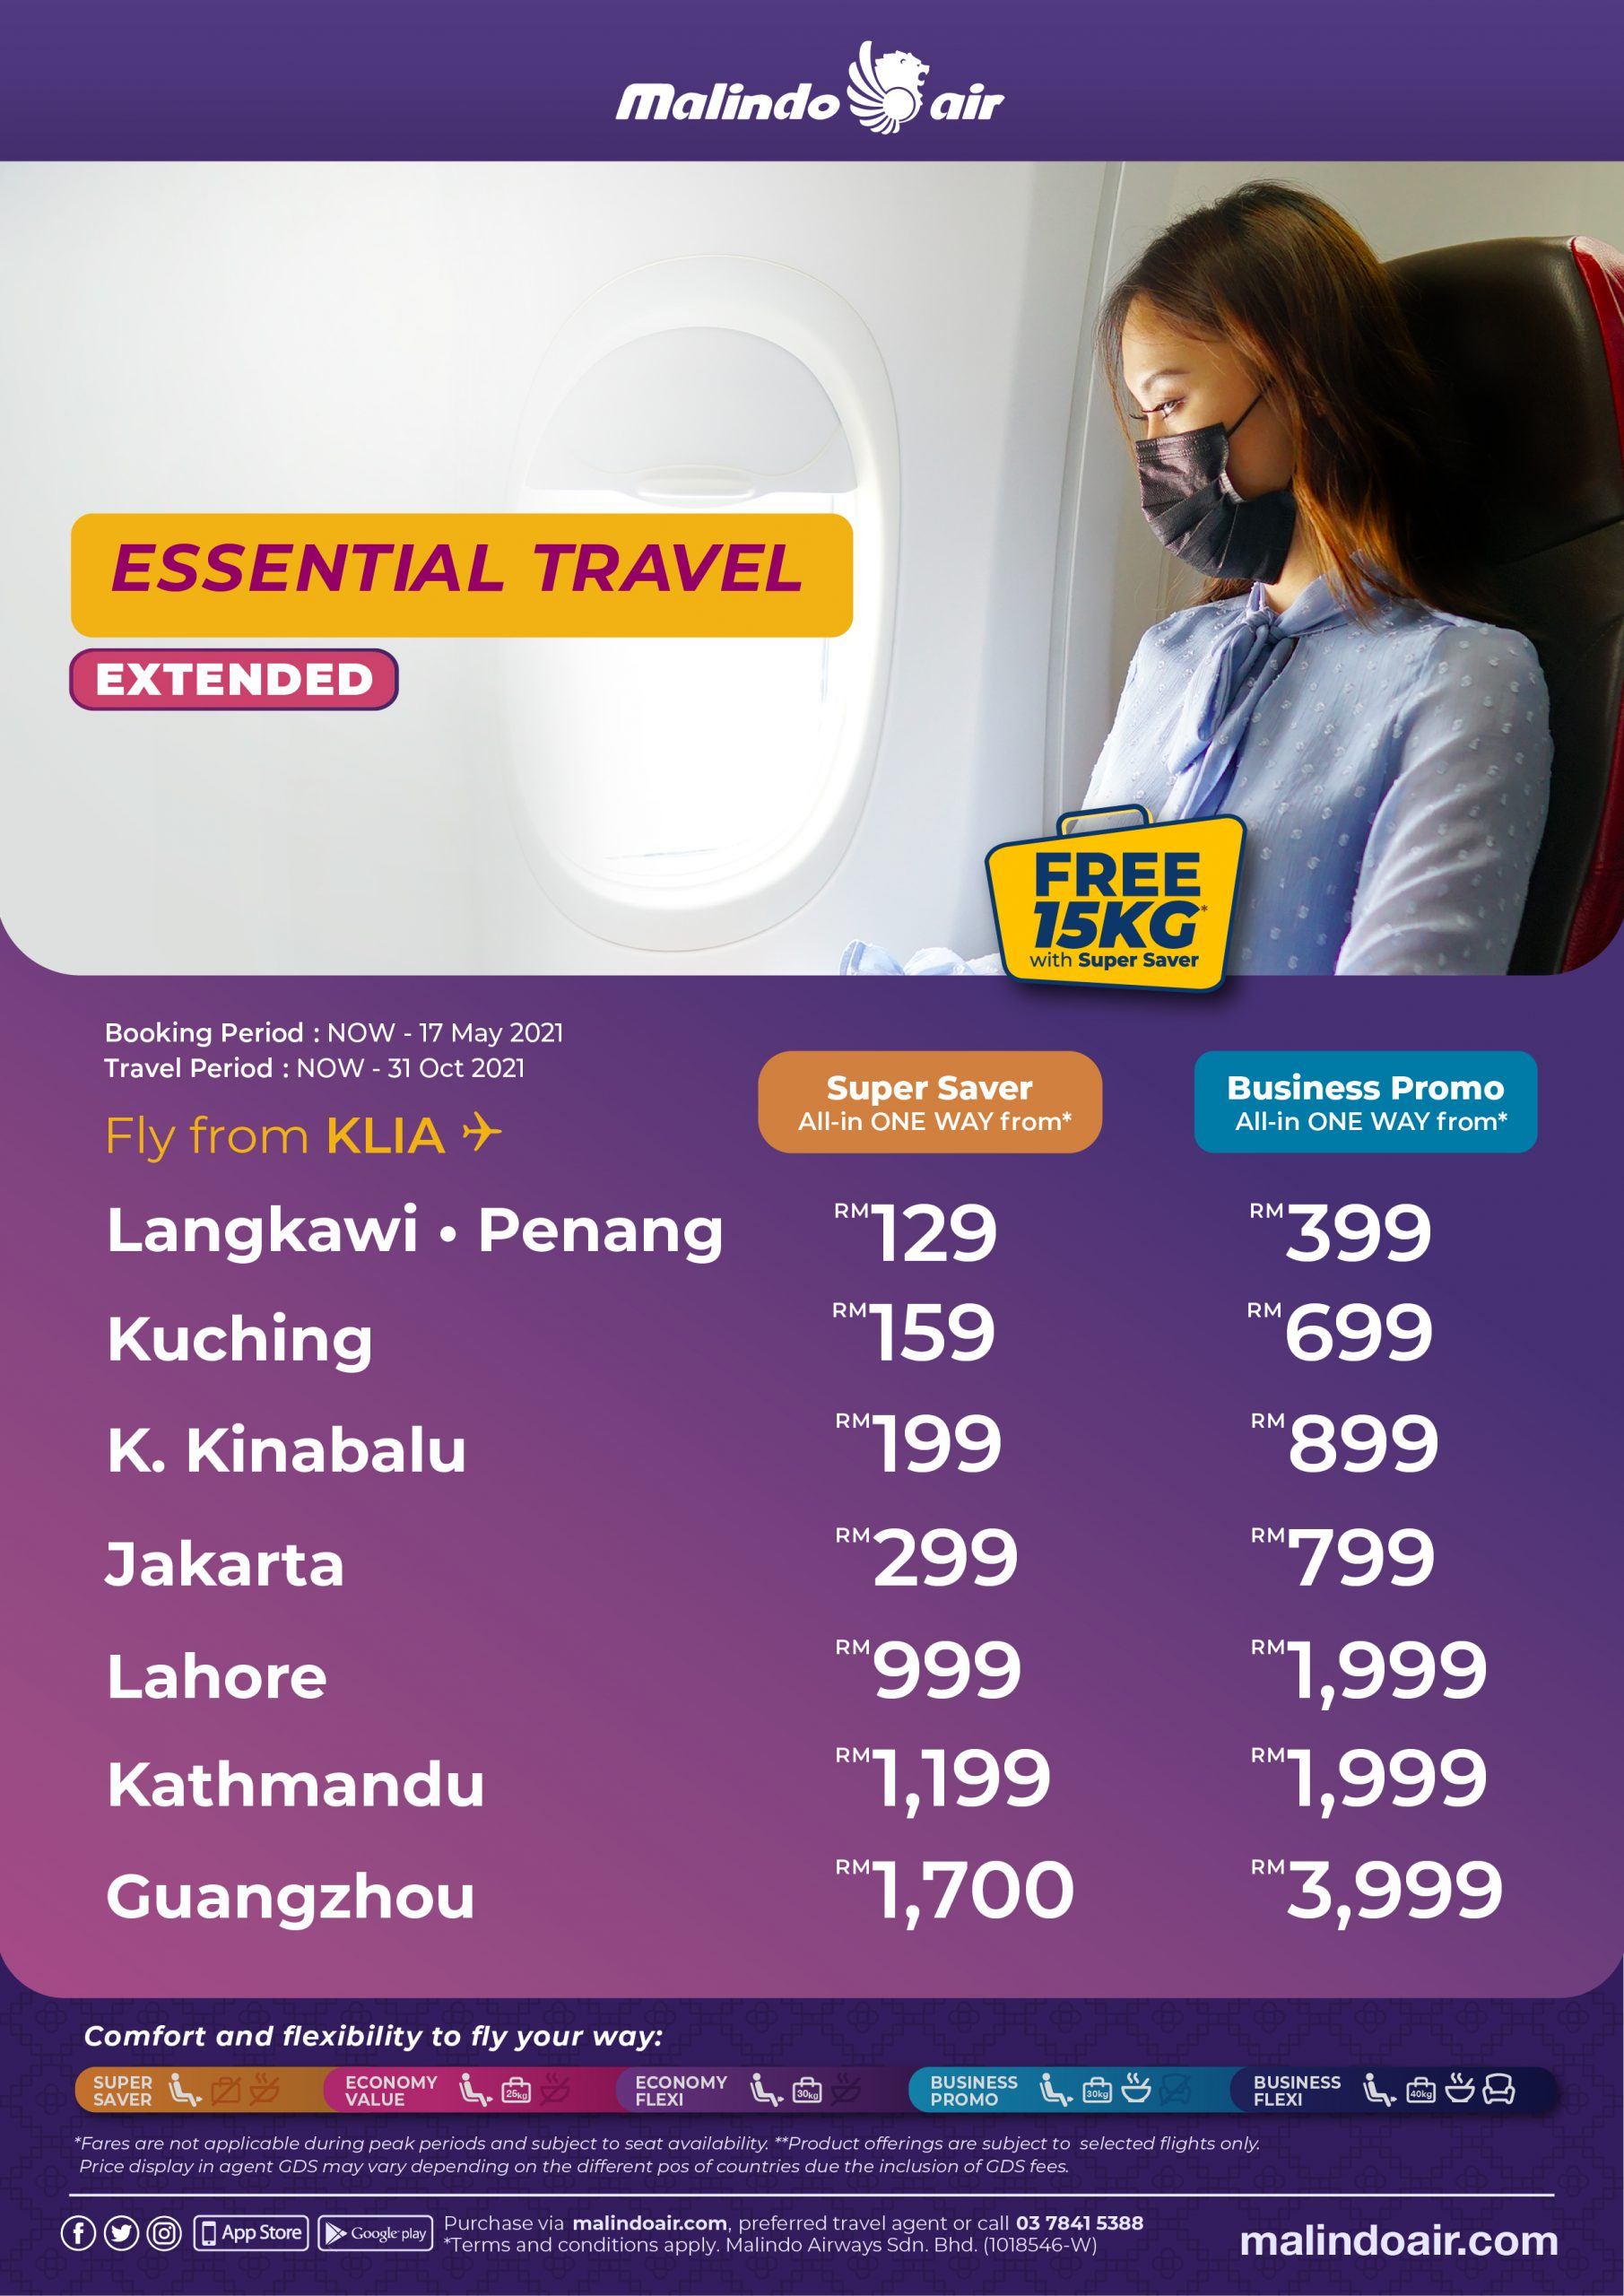 Malindo Air Essential Travel fly from KLIA ESS Camp A4 KUL scaled